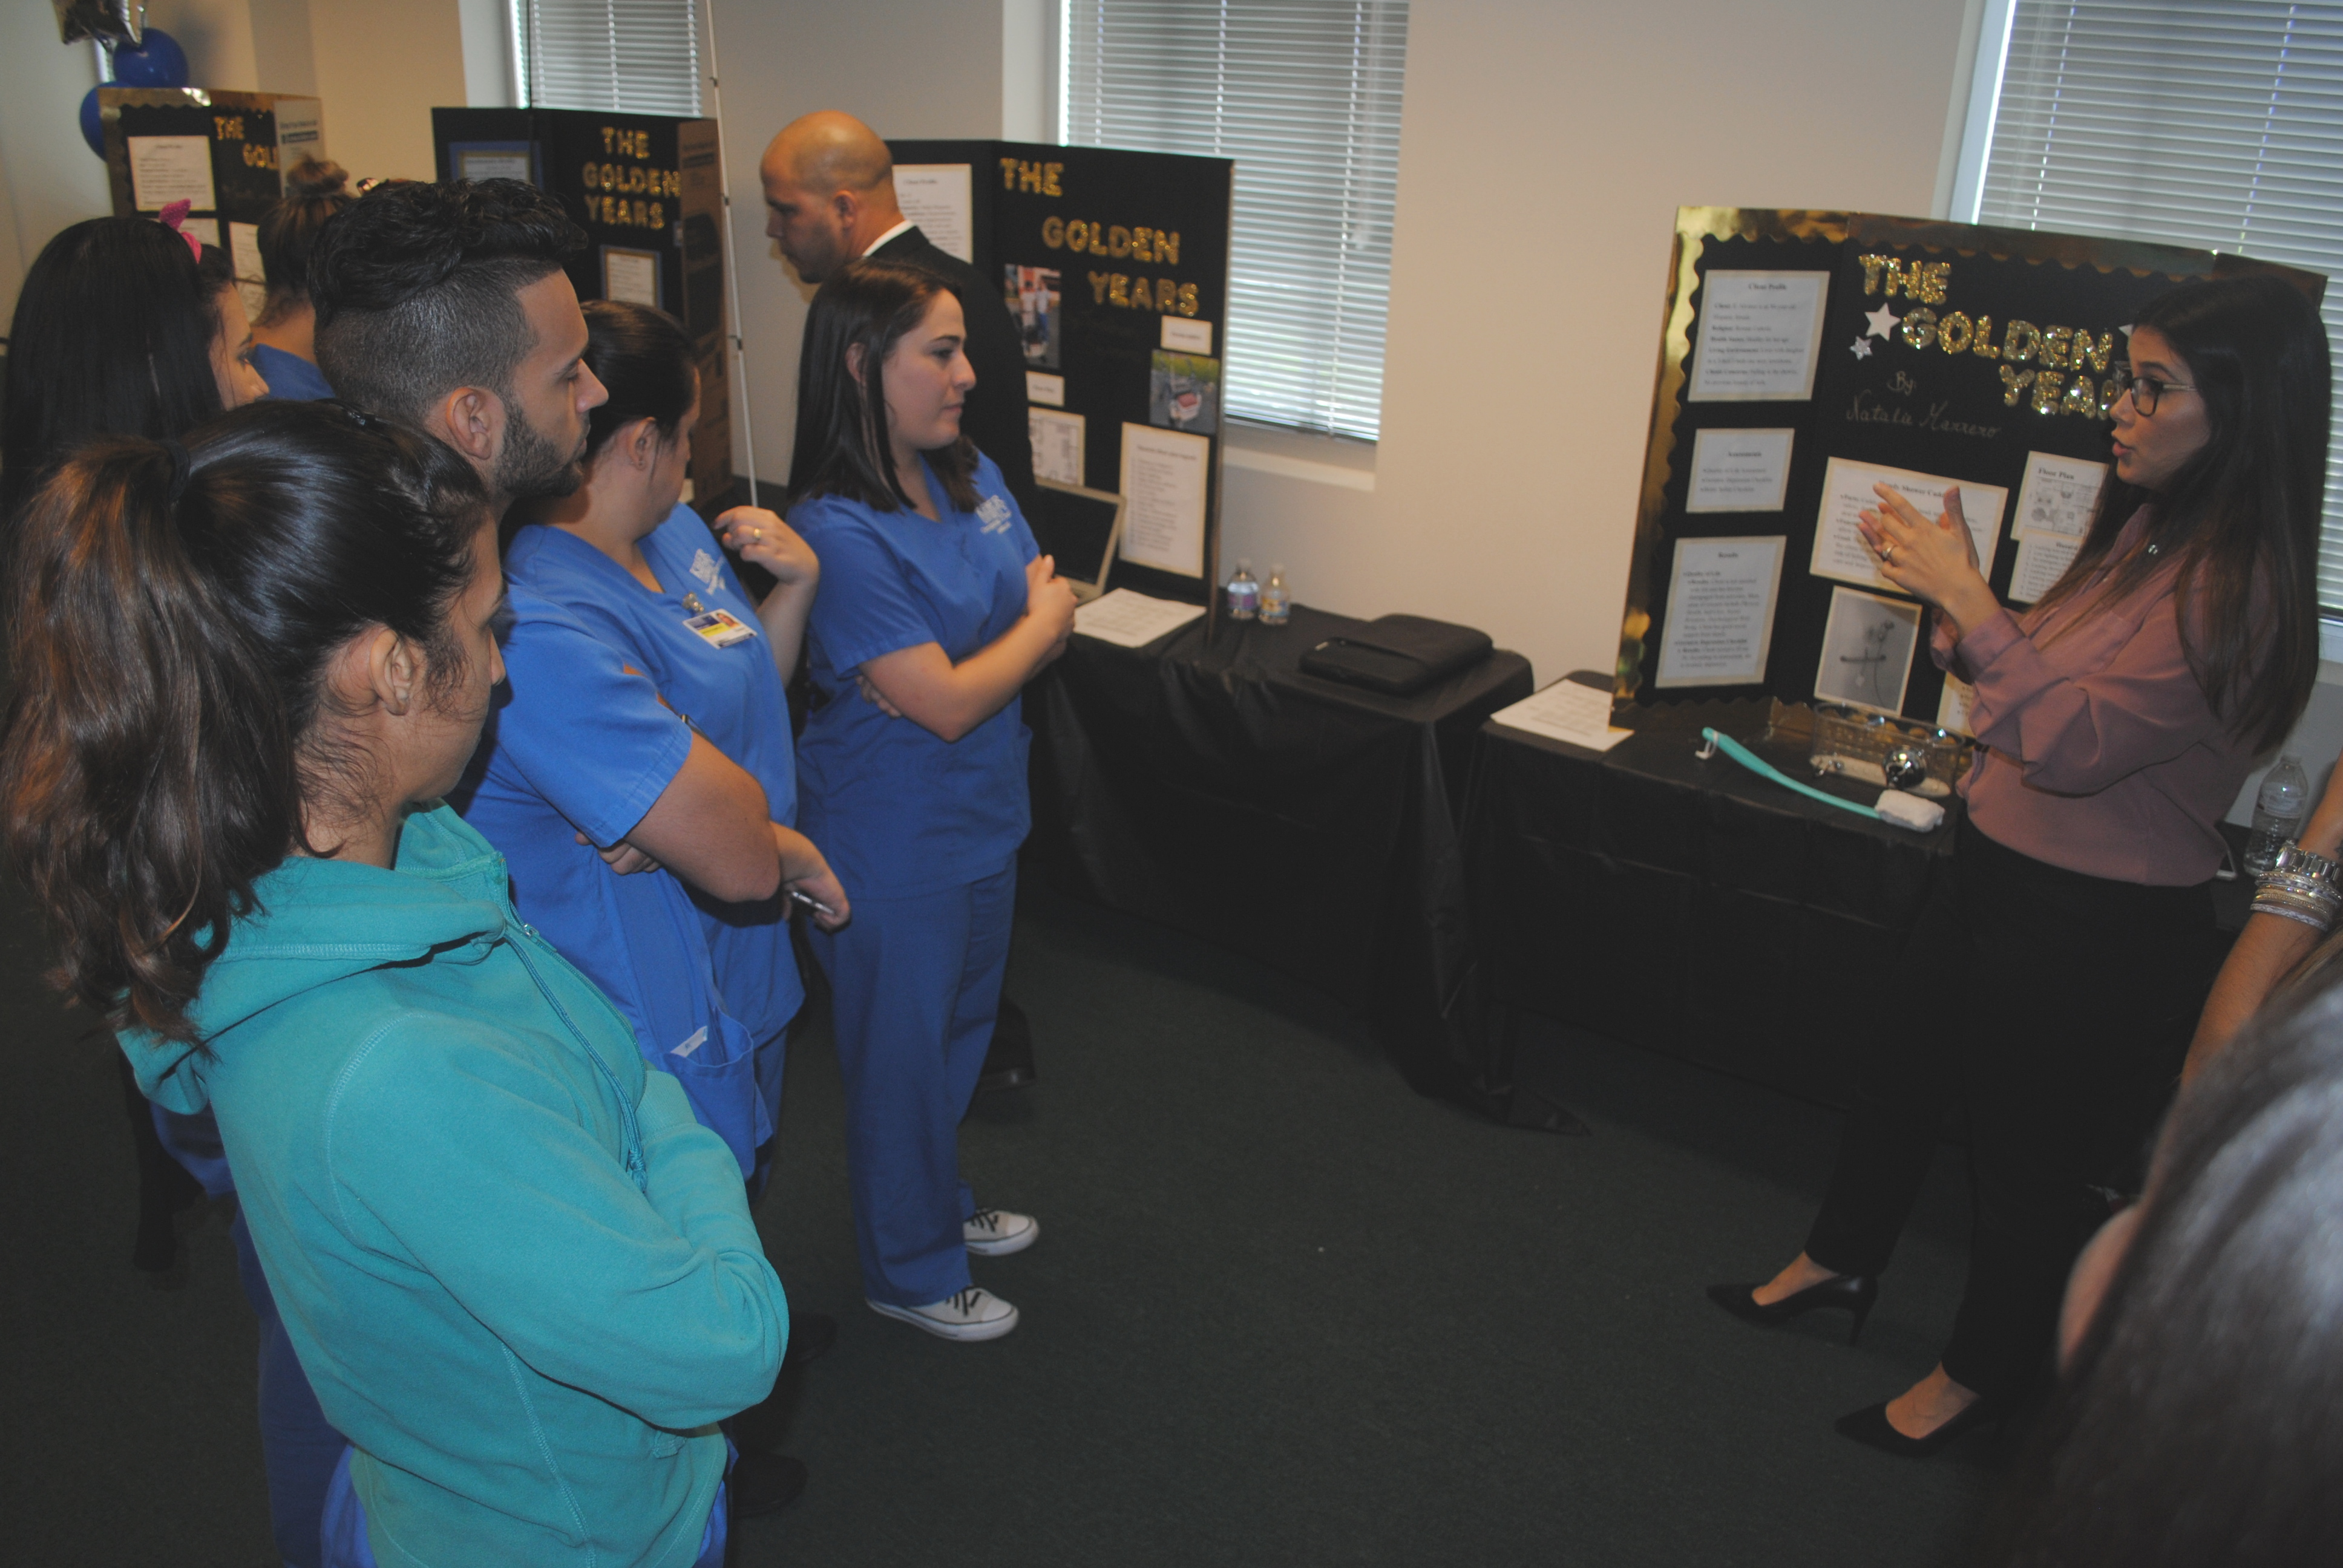 Miami OTA Students Showcases Aging in Place Projects